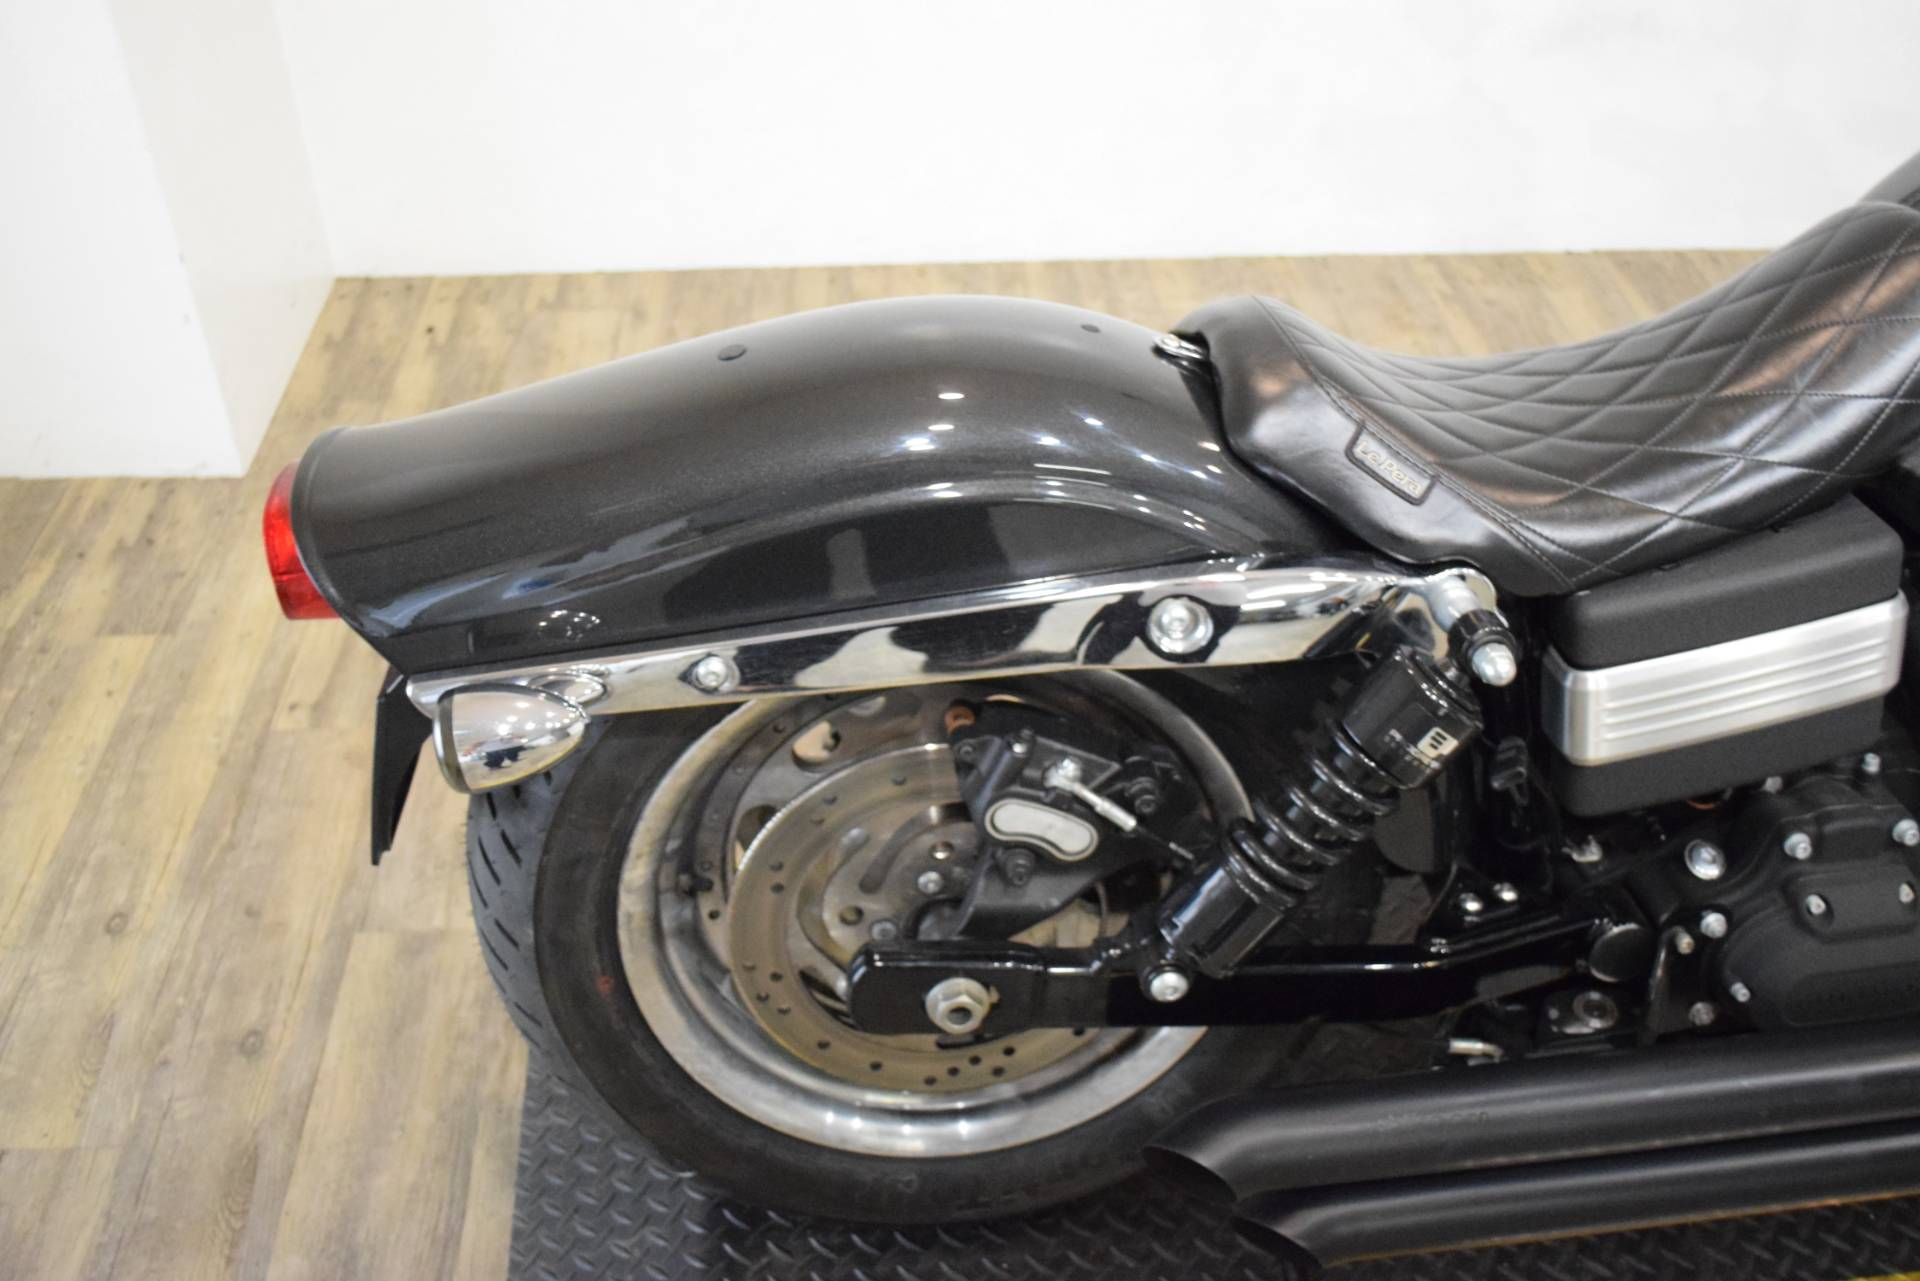 2008 Harley-Davidson Dyna® Fat Bob™ in Wauconda, Illinois - Photo 7